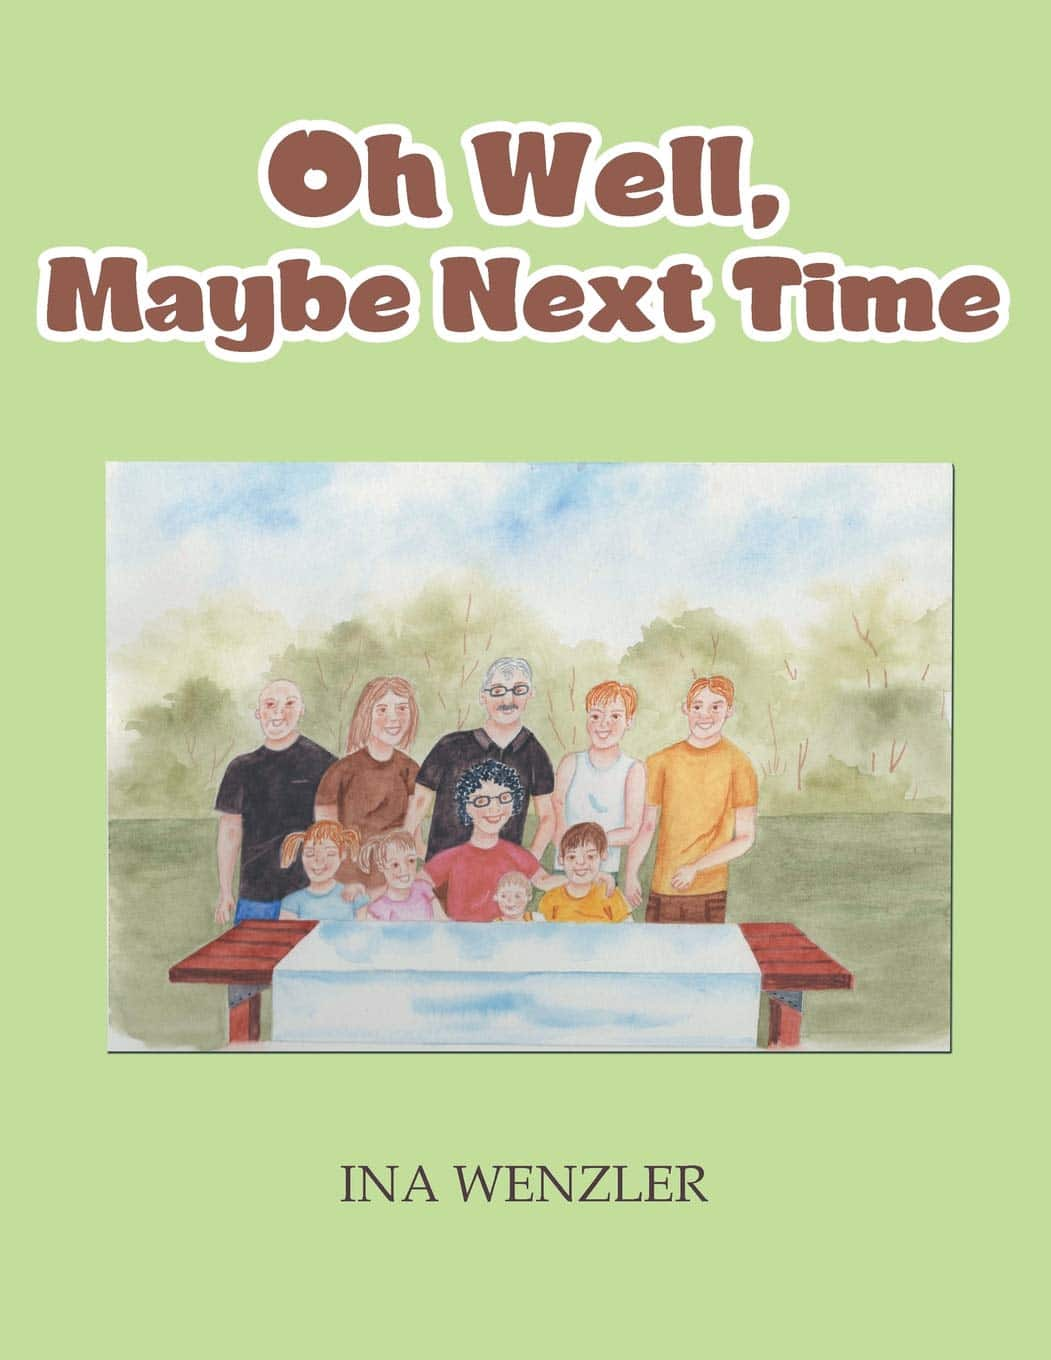 Oh well maybe next time by Ina Wenzler